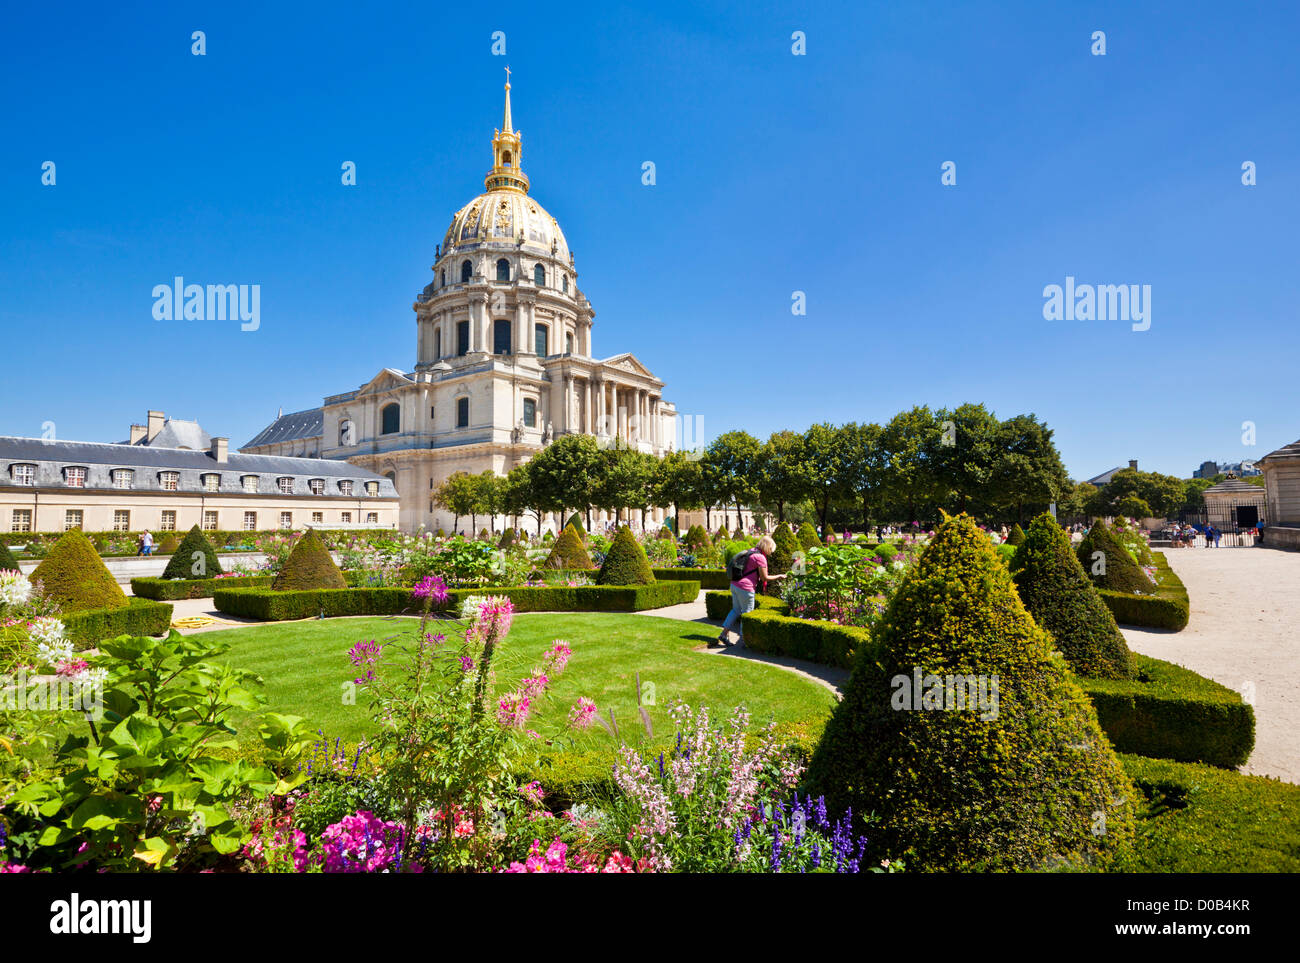 Person looking at the flowers in the gardens of the Eglise du Dome Les Invalides napoleons tomb Paris France EU - Stock Image